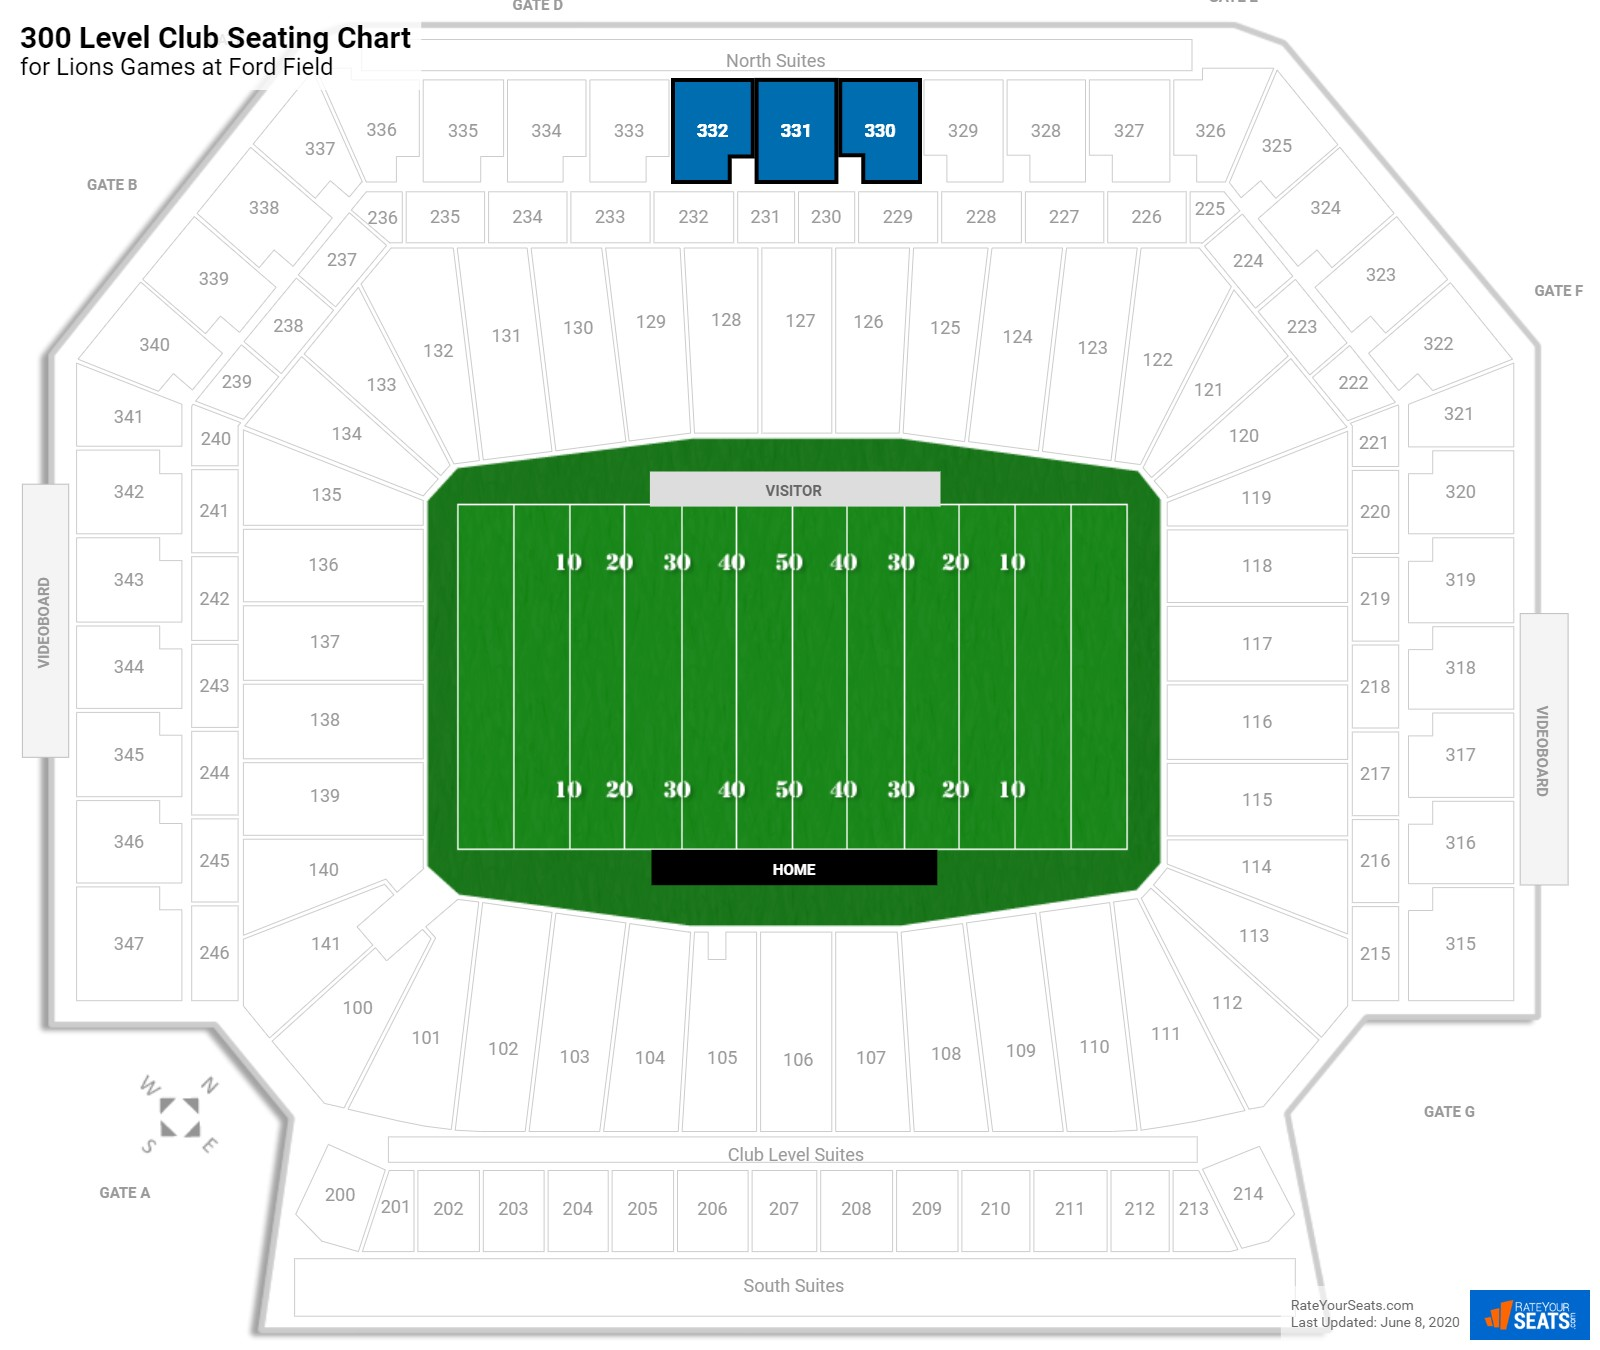 Ford Field 300 Level Club seating chart